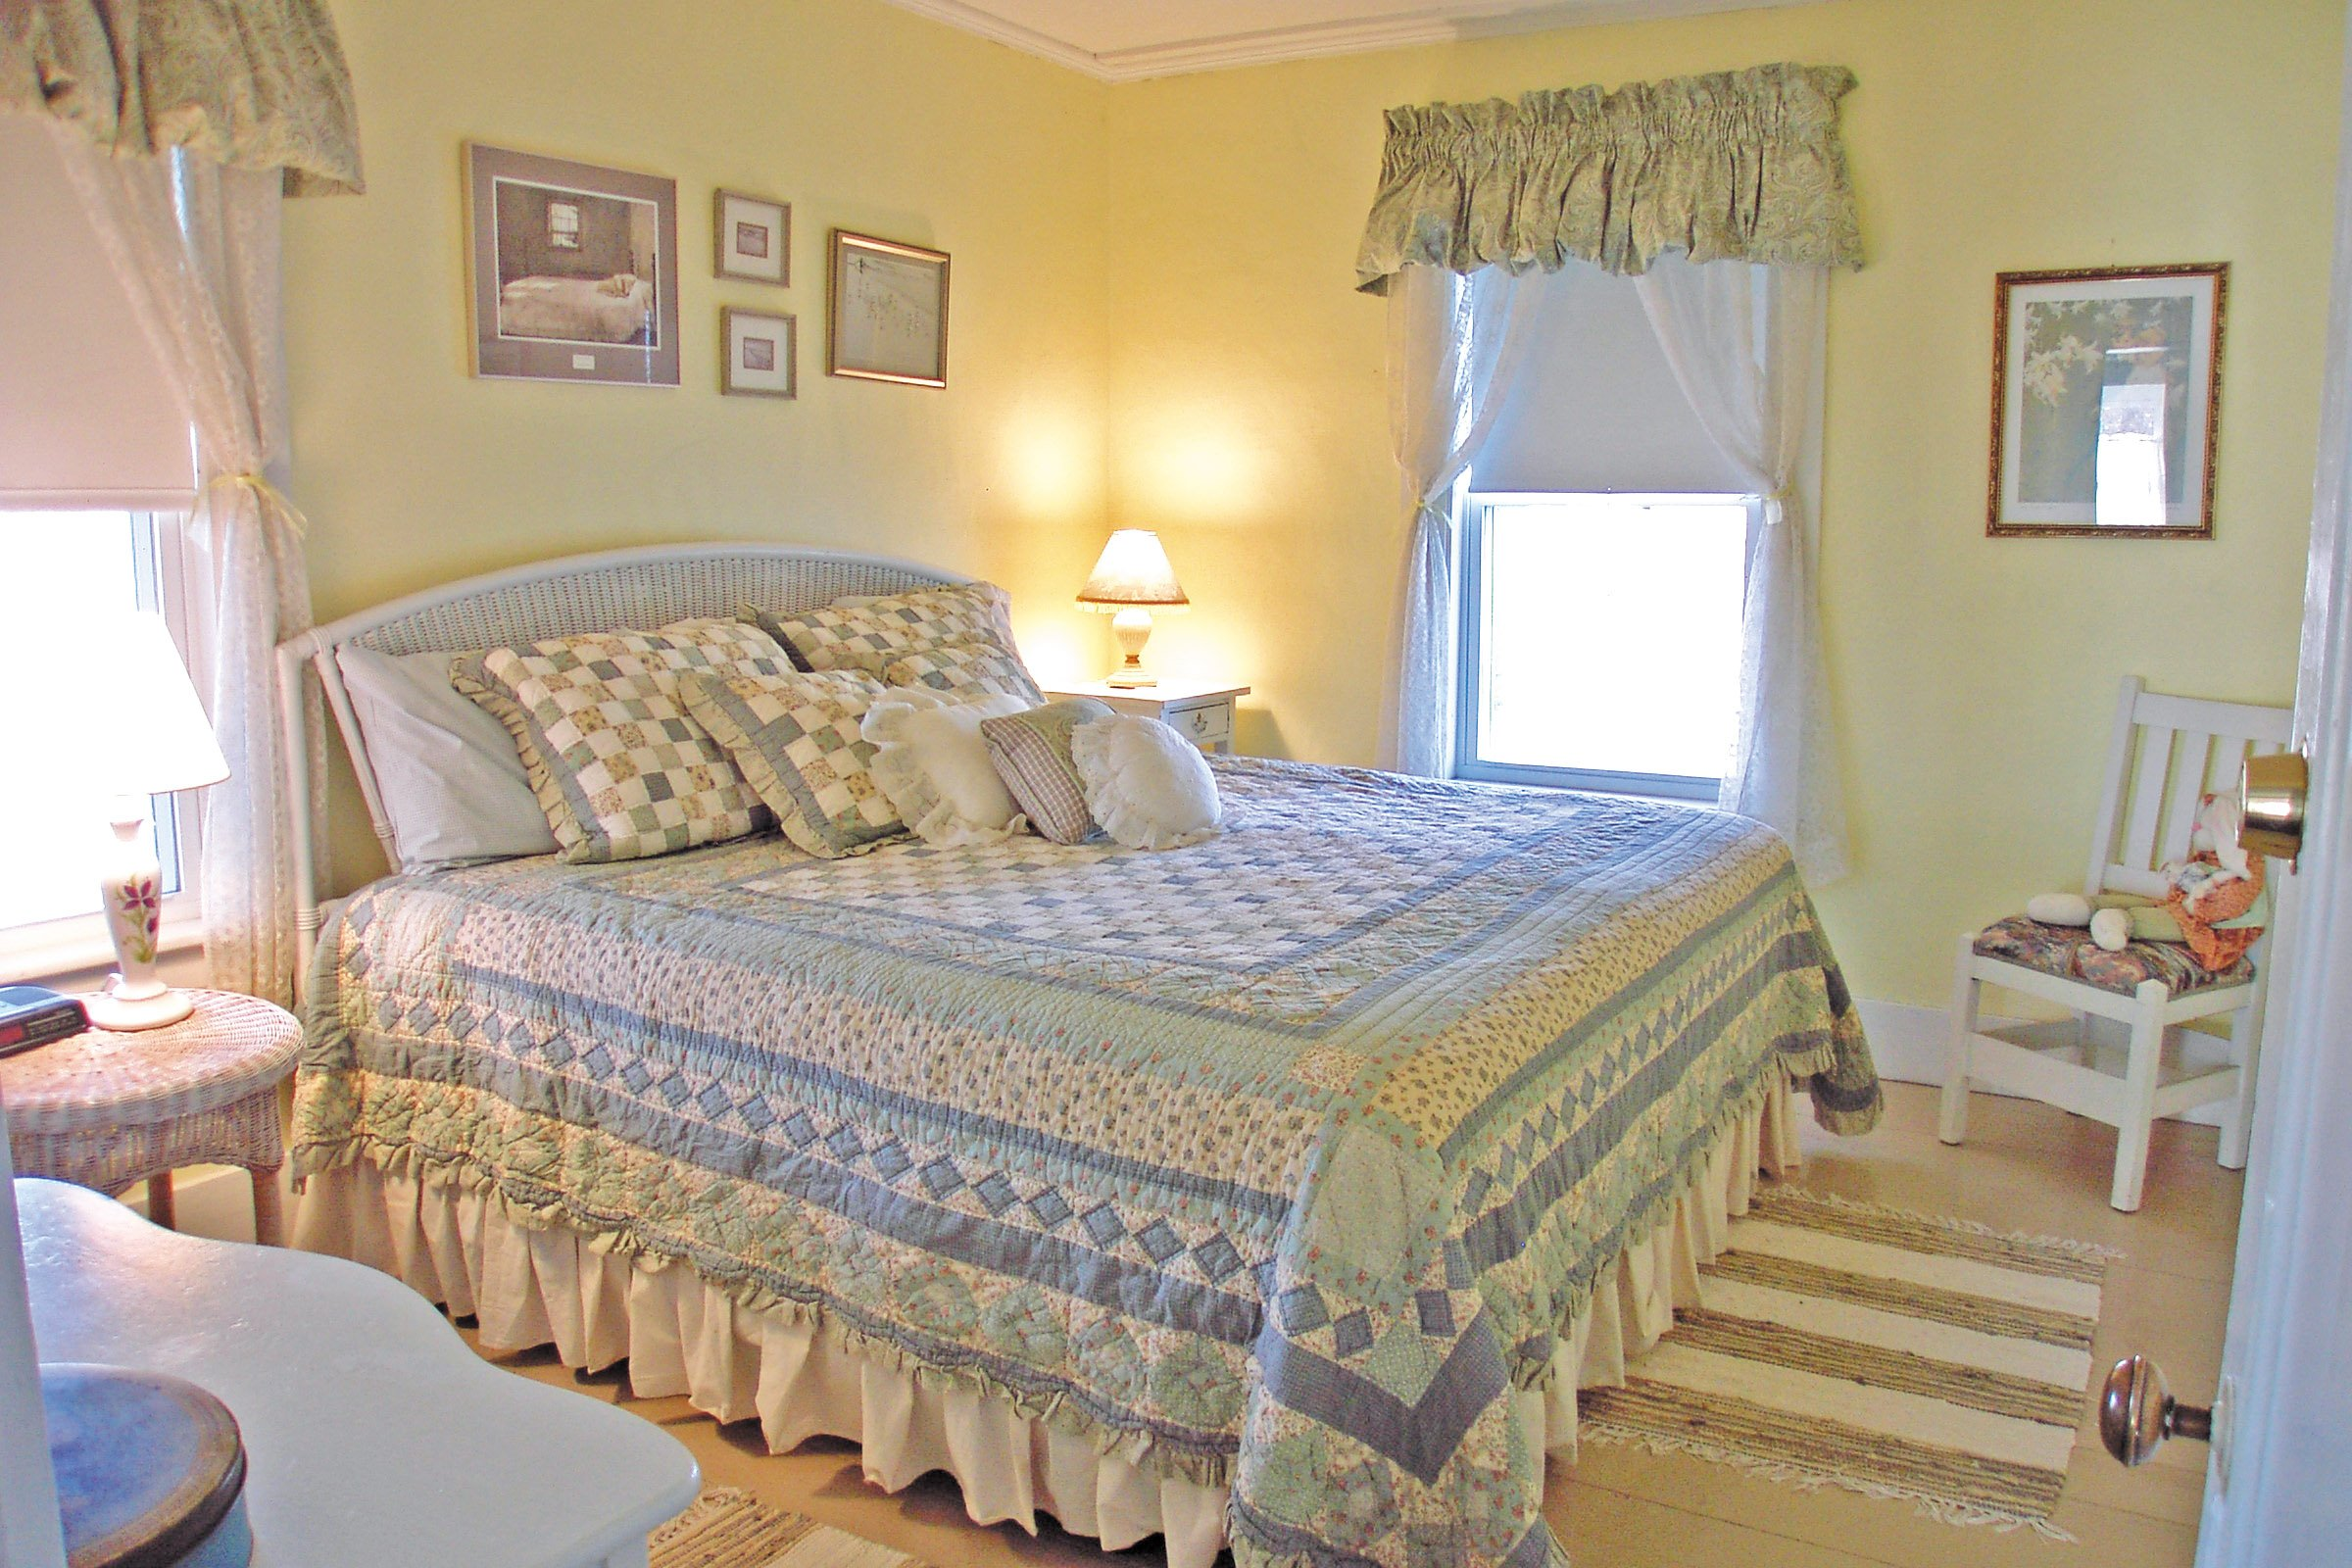 Guestroom #2, One king size bed